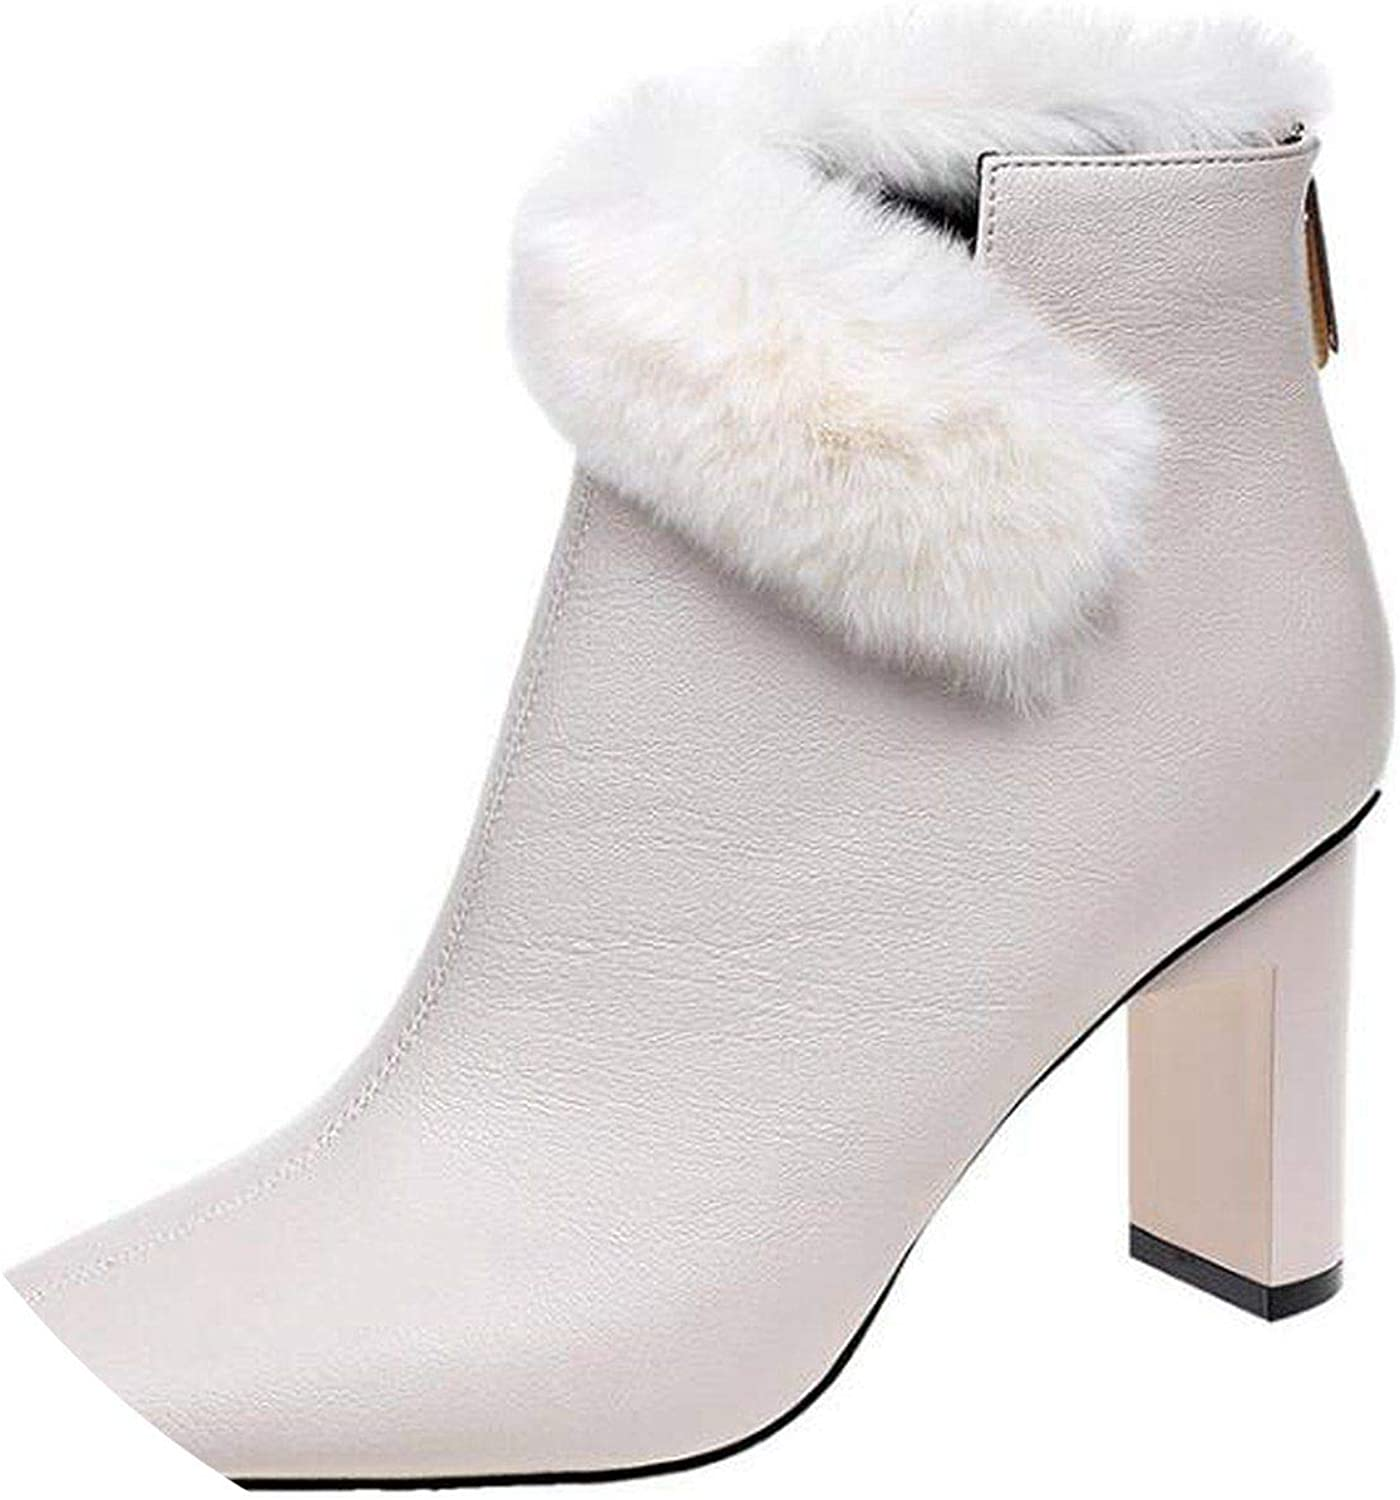 Summer-lavender Fur Snow Boots Women Waterproof Ankle Boots Side Zip Square Head high Heel Winter Plush Martin Boots